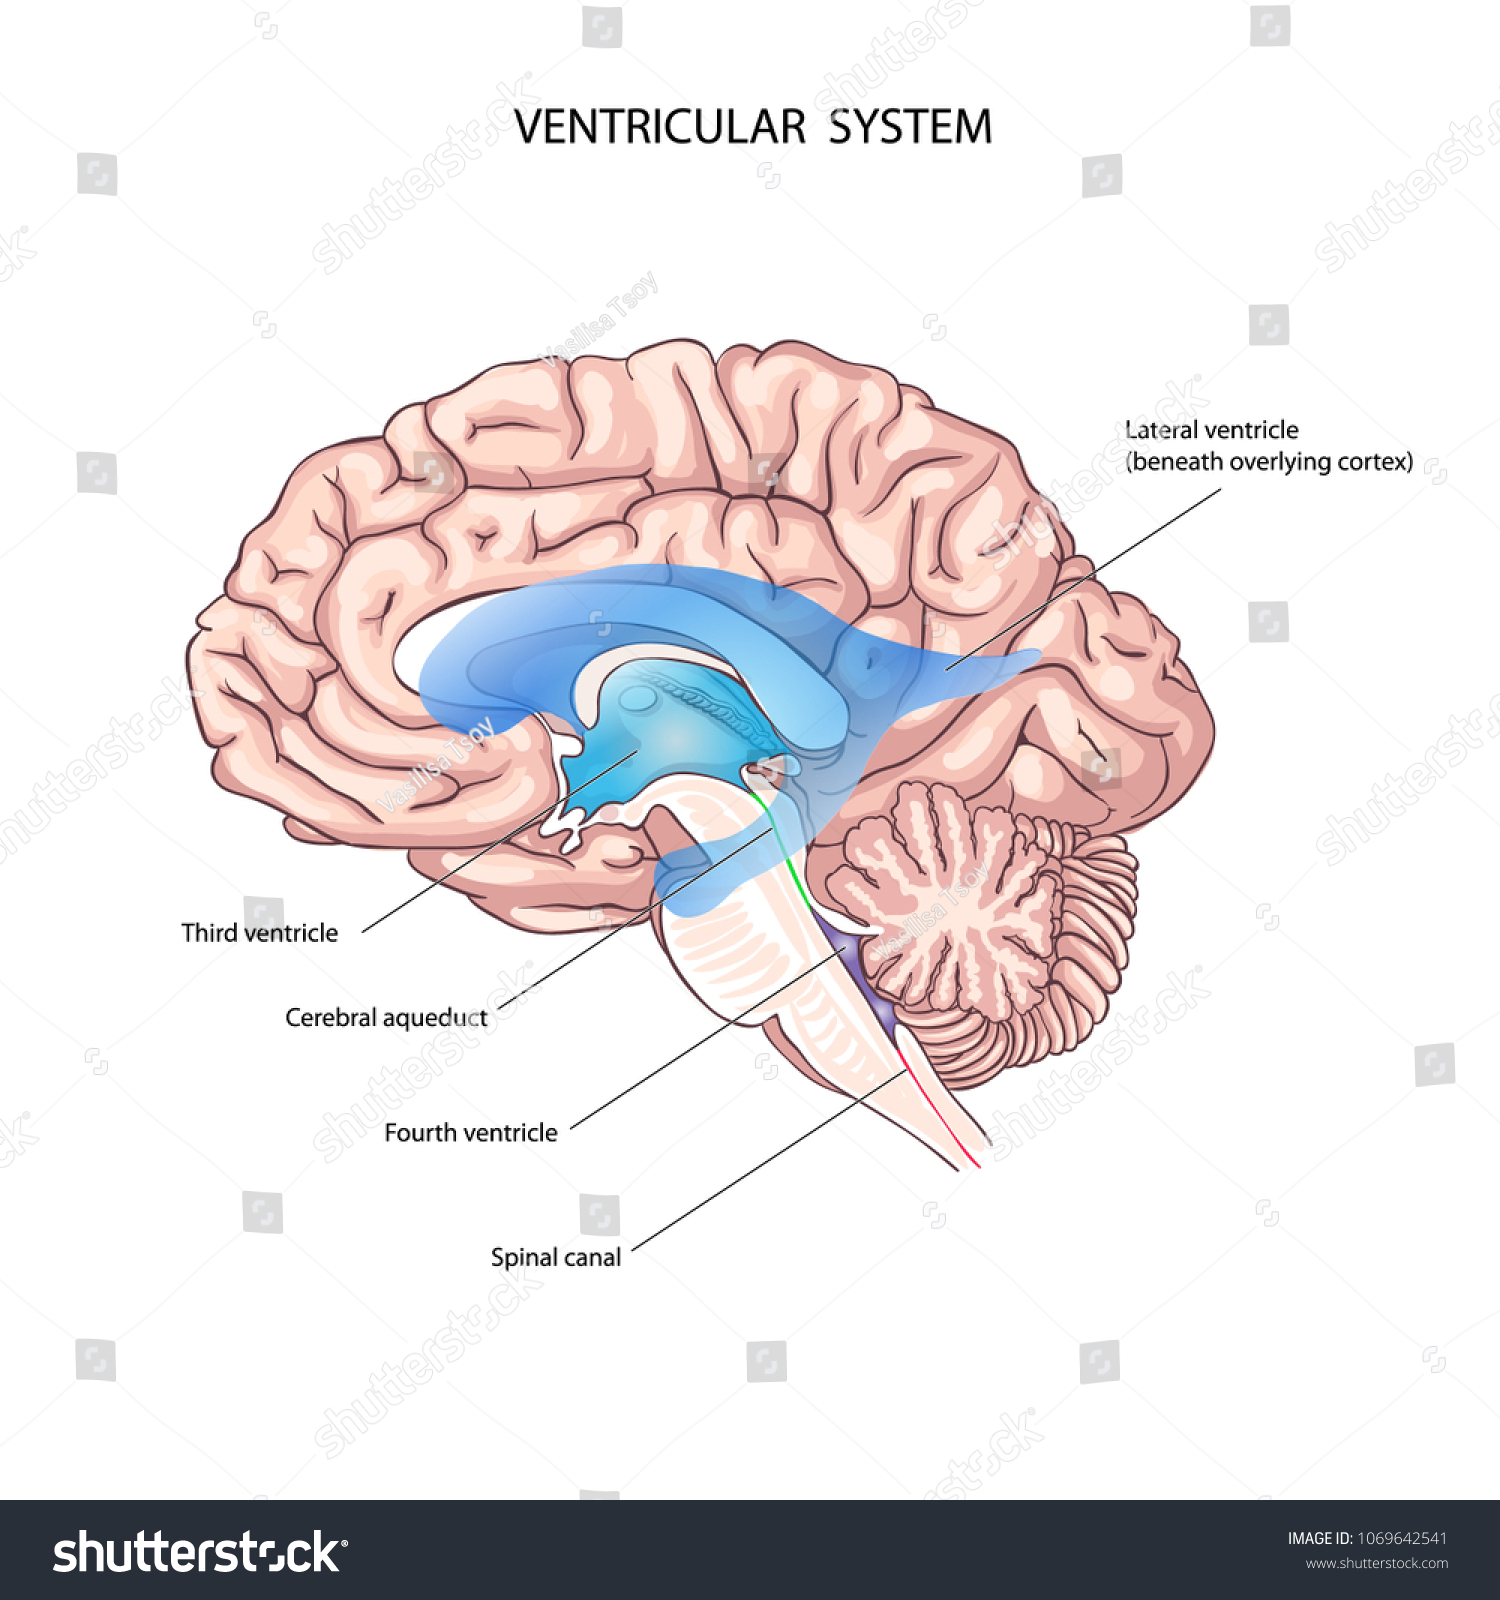 Human Ventricular System Brain Anatomy Third Stock Vector HD ...